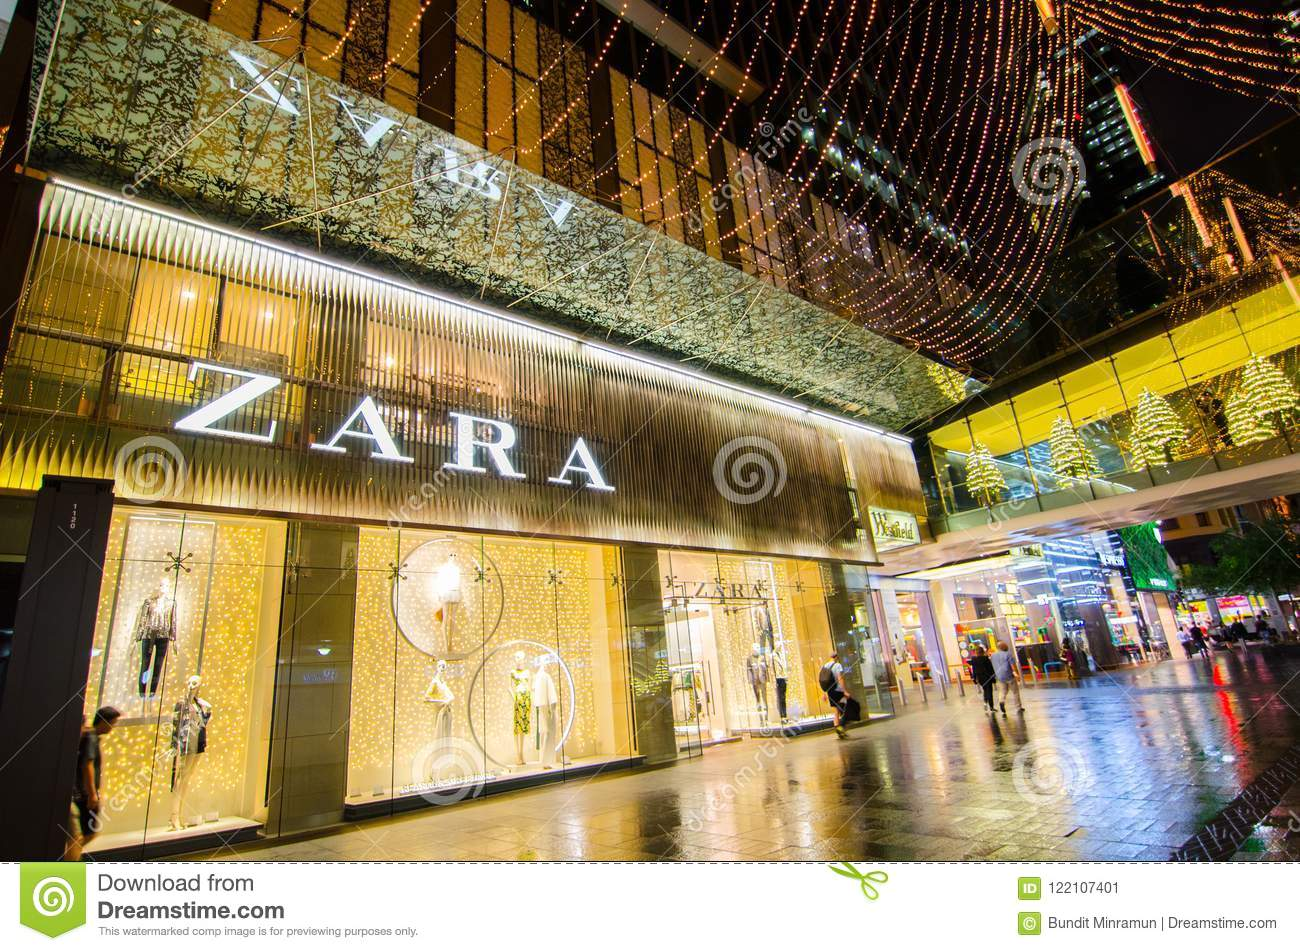 Zara Fashion Clothing And Accessories Retail Store 08aab07d90